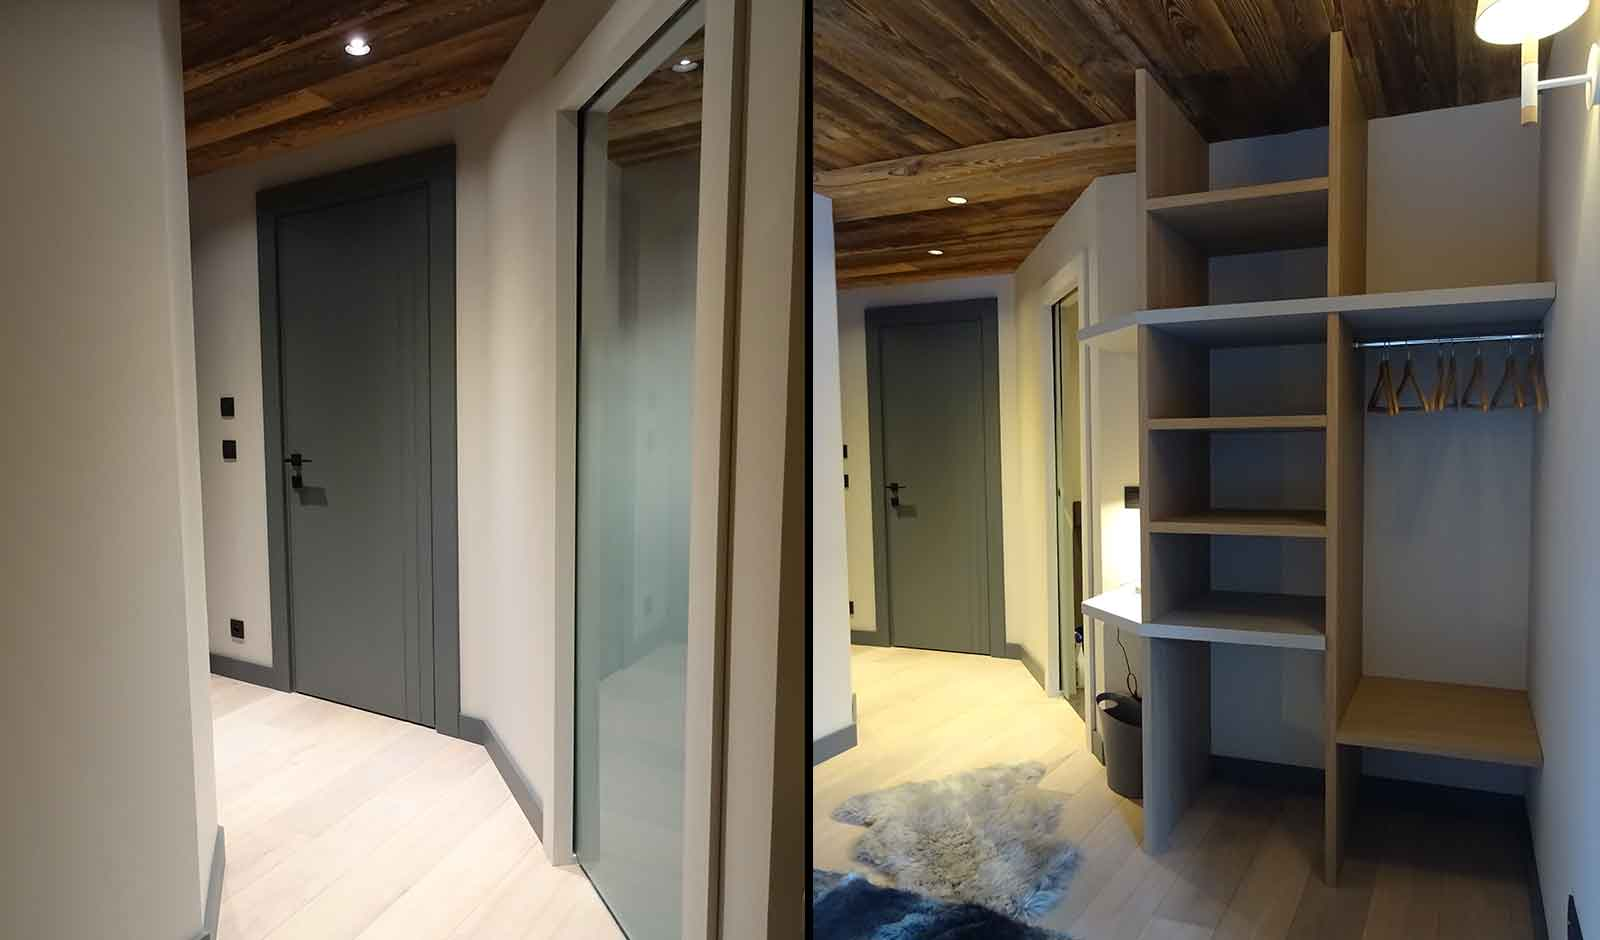 chalet-charlie-8-atelier-crea-and-co-architecte-design-project-manager-meribel-savoie